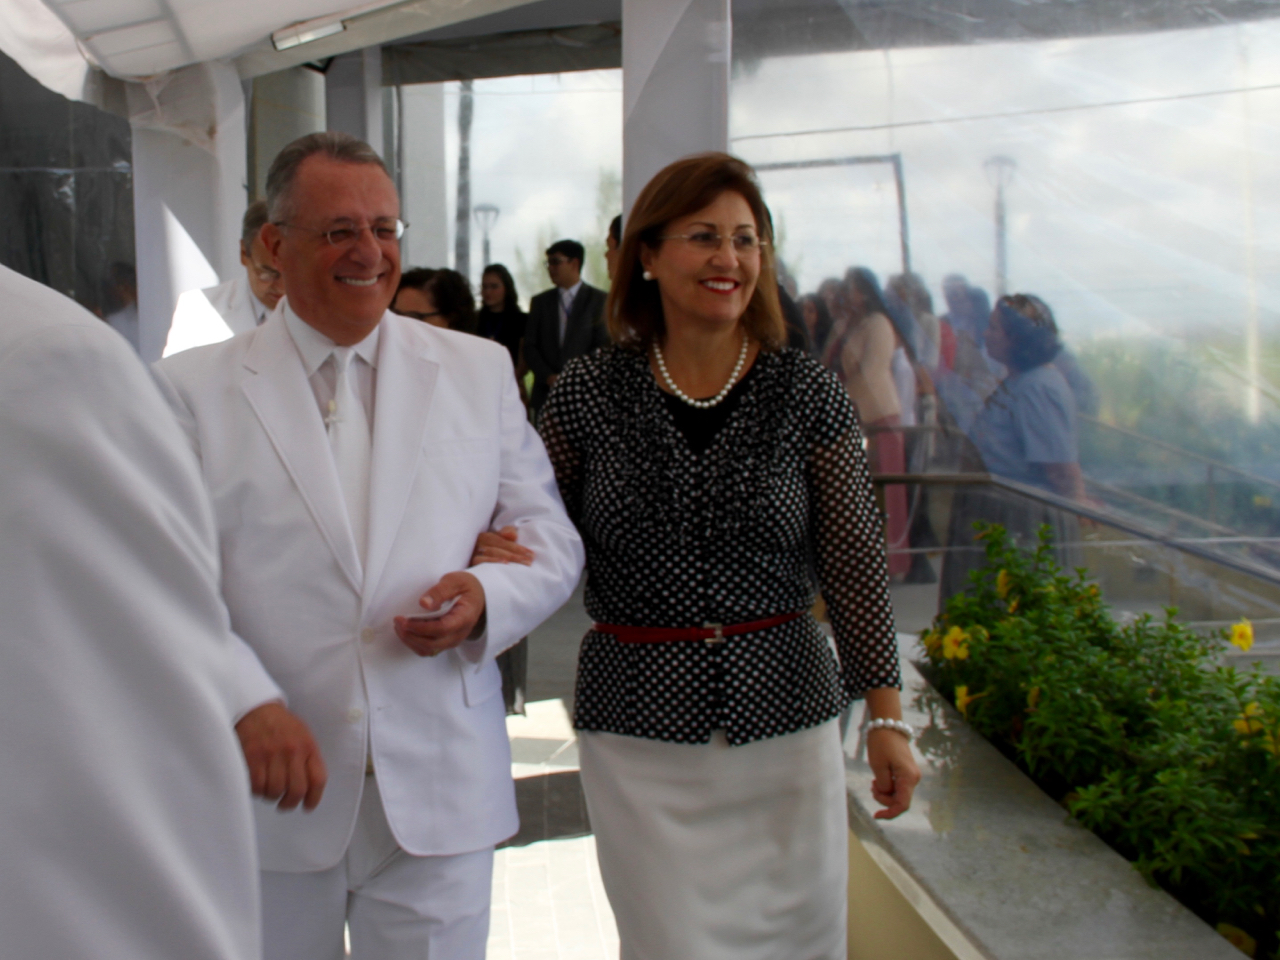 Elder Ulisses Soares of the Quorum of the Twelve Apostles and his wife, Sister Rosana Soares, acknowledge members as they arrive at cornerstone of the Fortaleza Brazil Temple on the morning of its dedication on June 2, 2019.